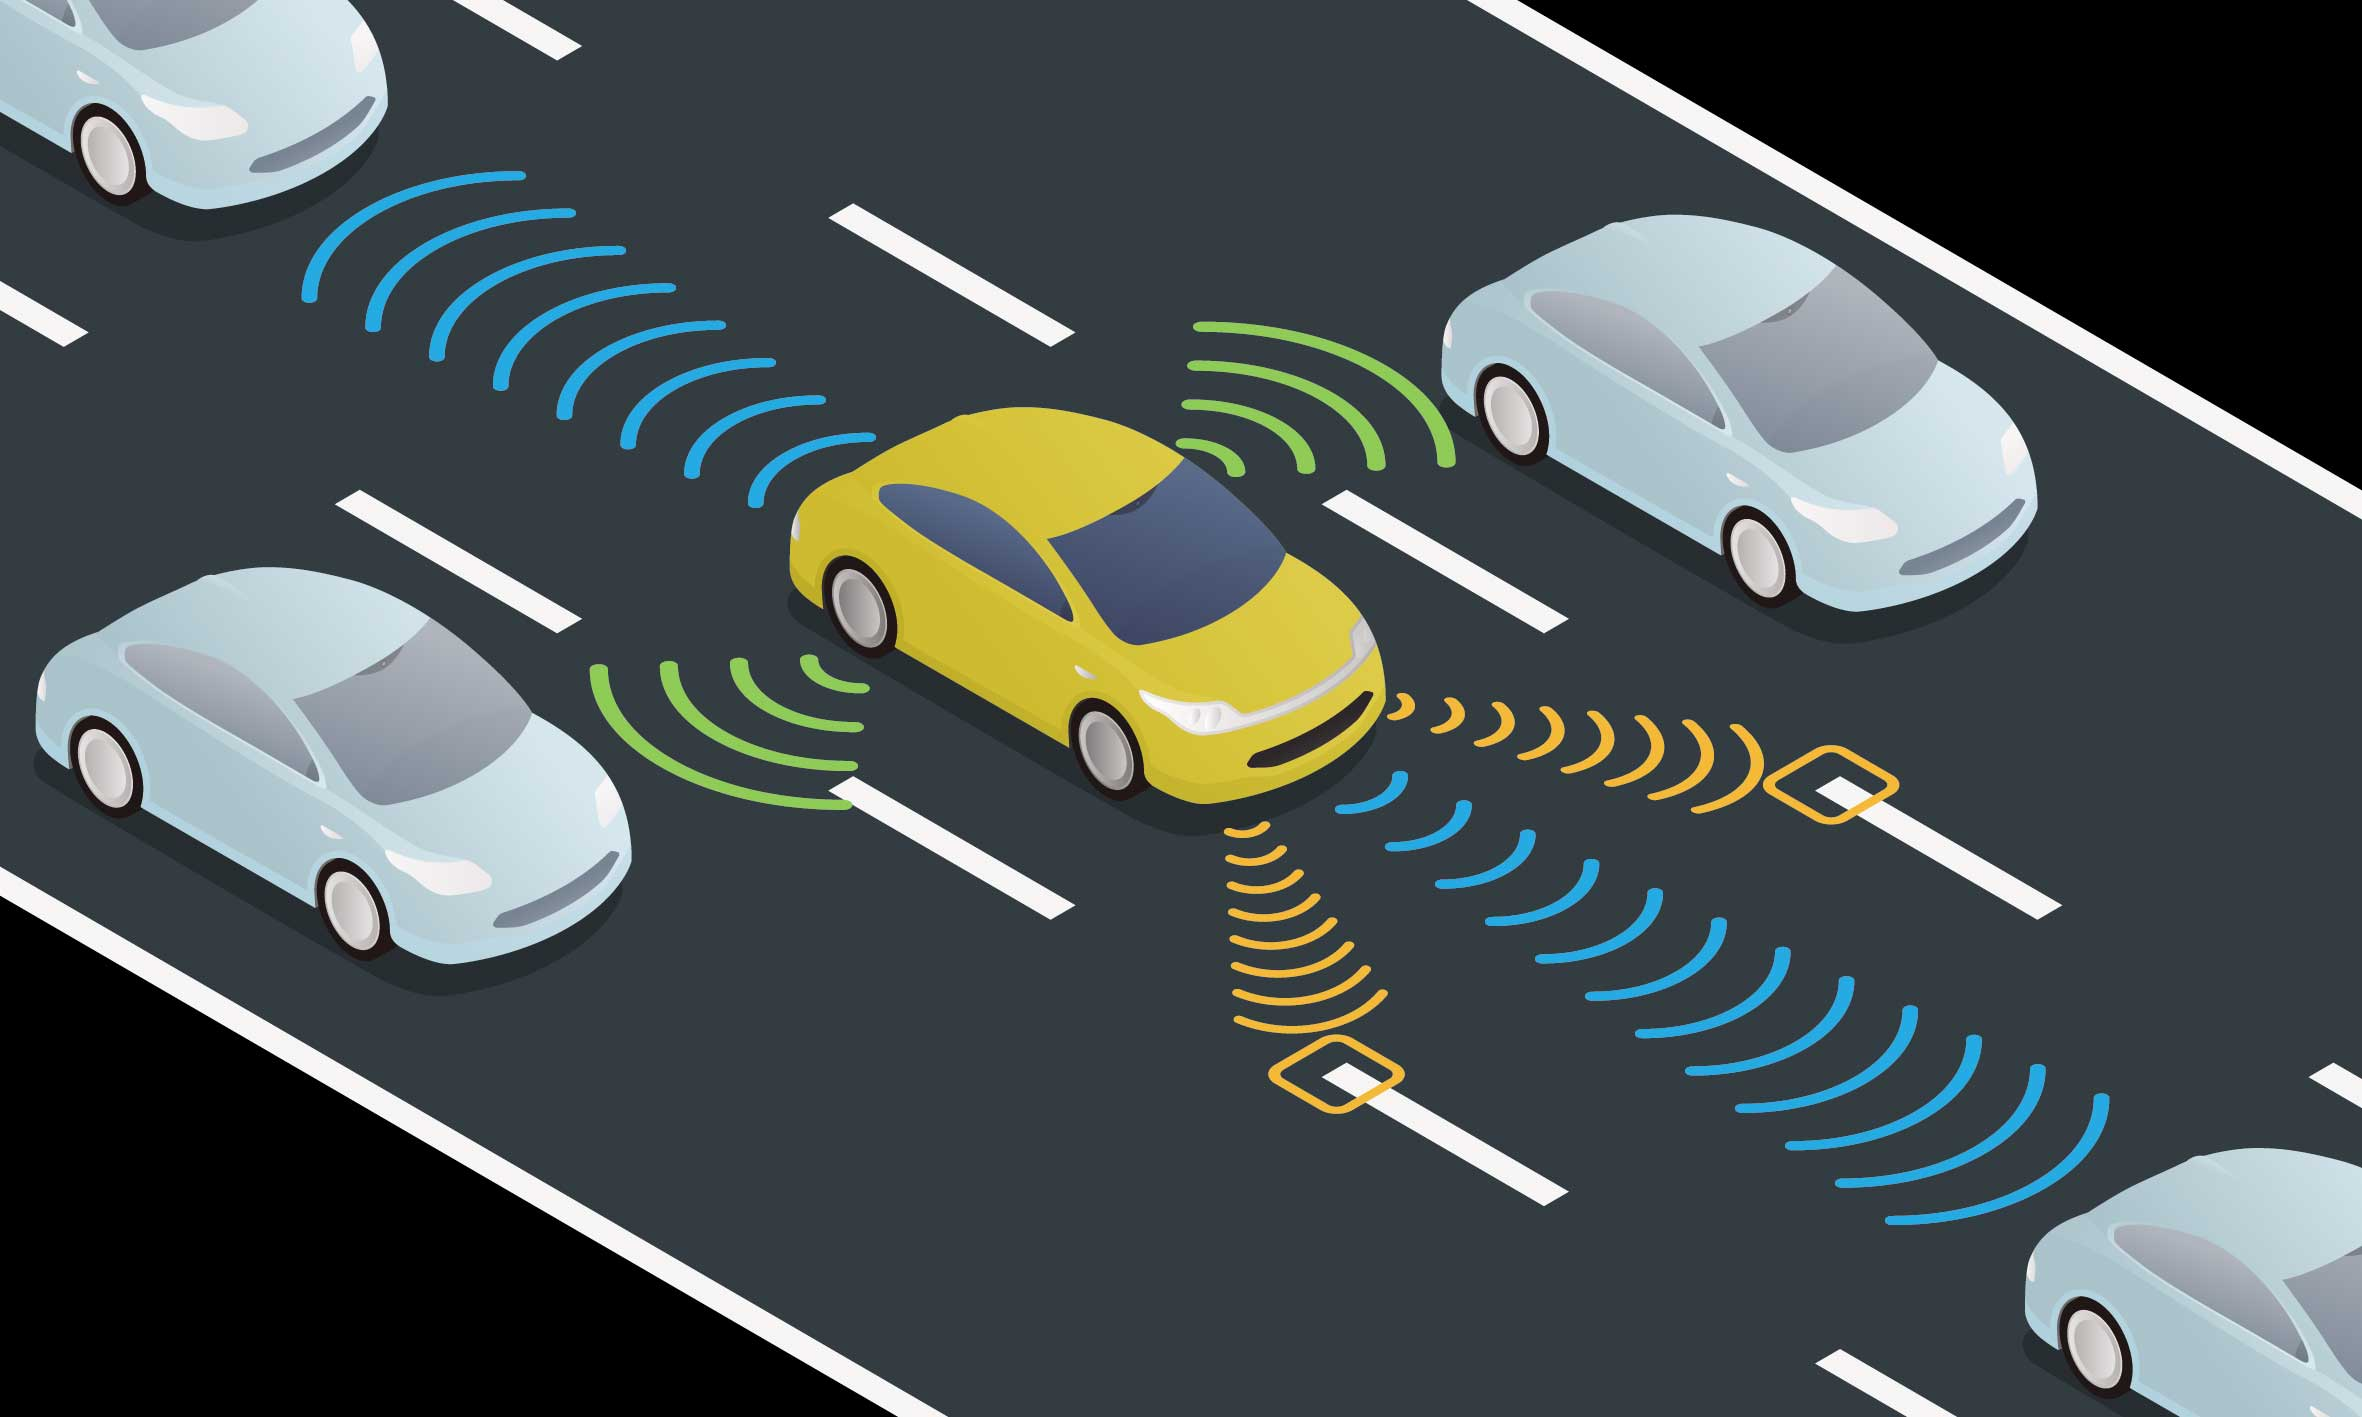 Transportation planners factoring in autonomous vehicles